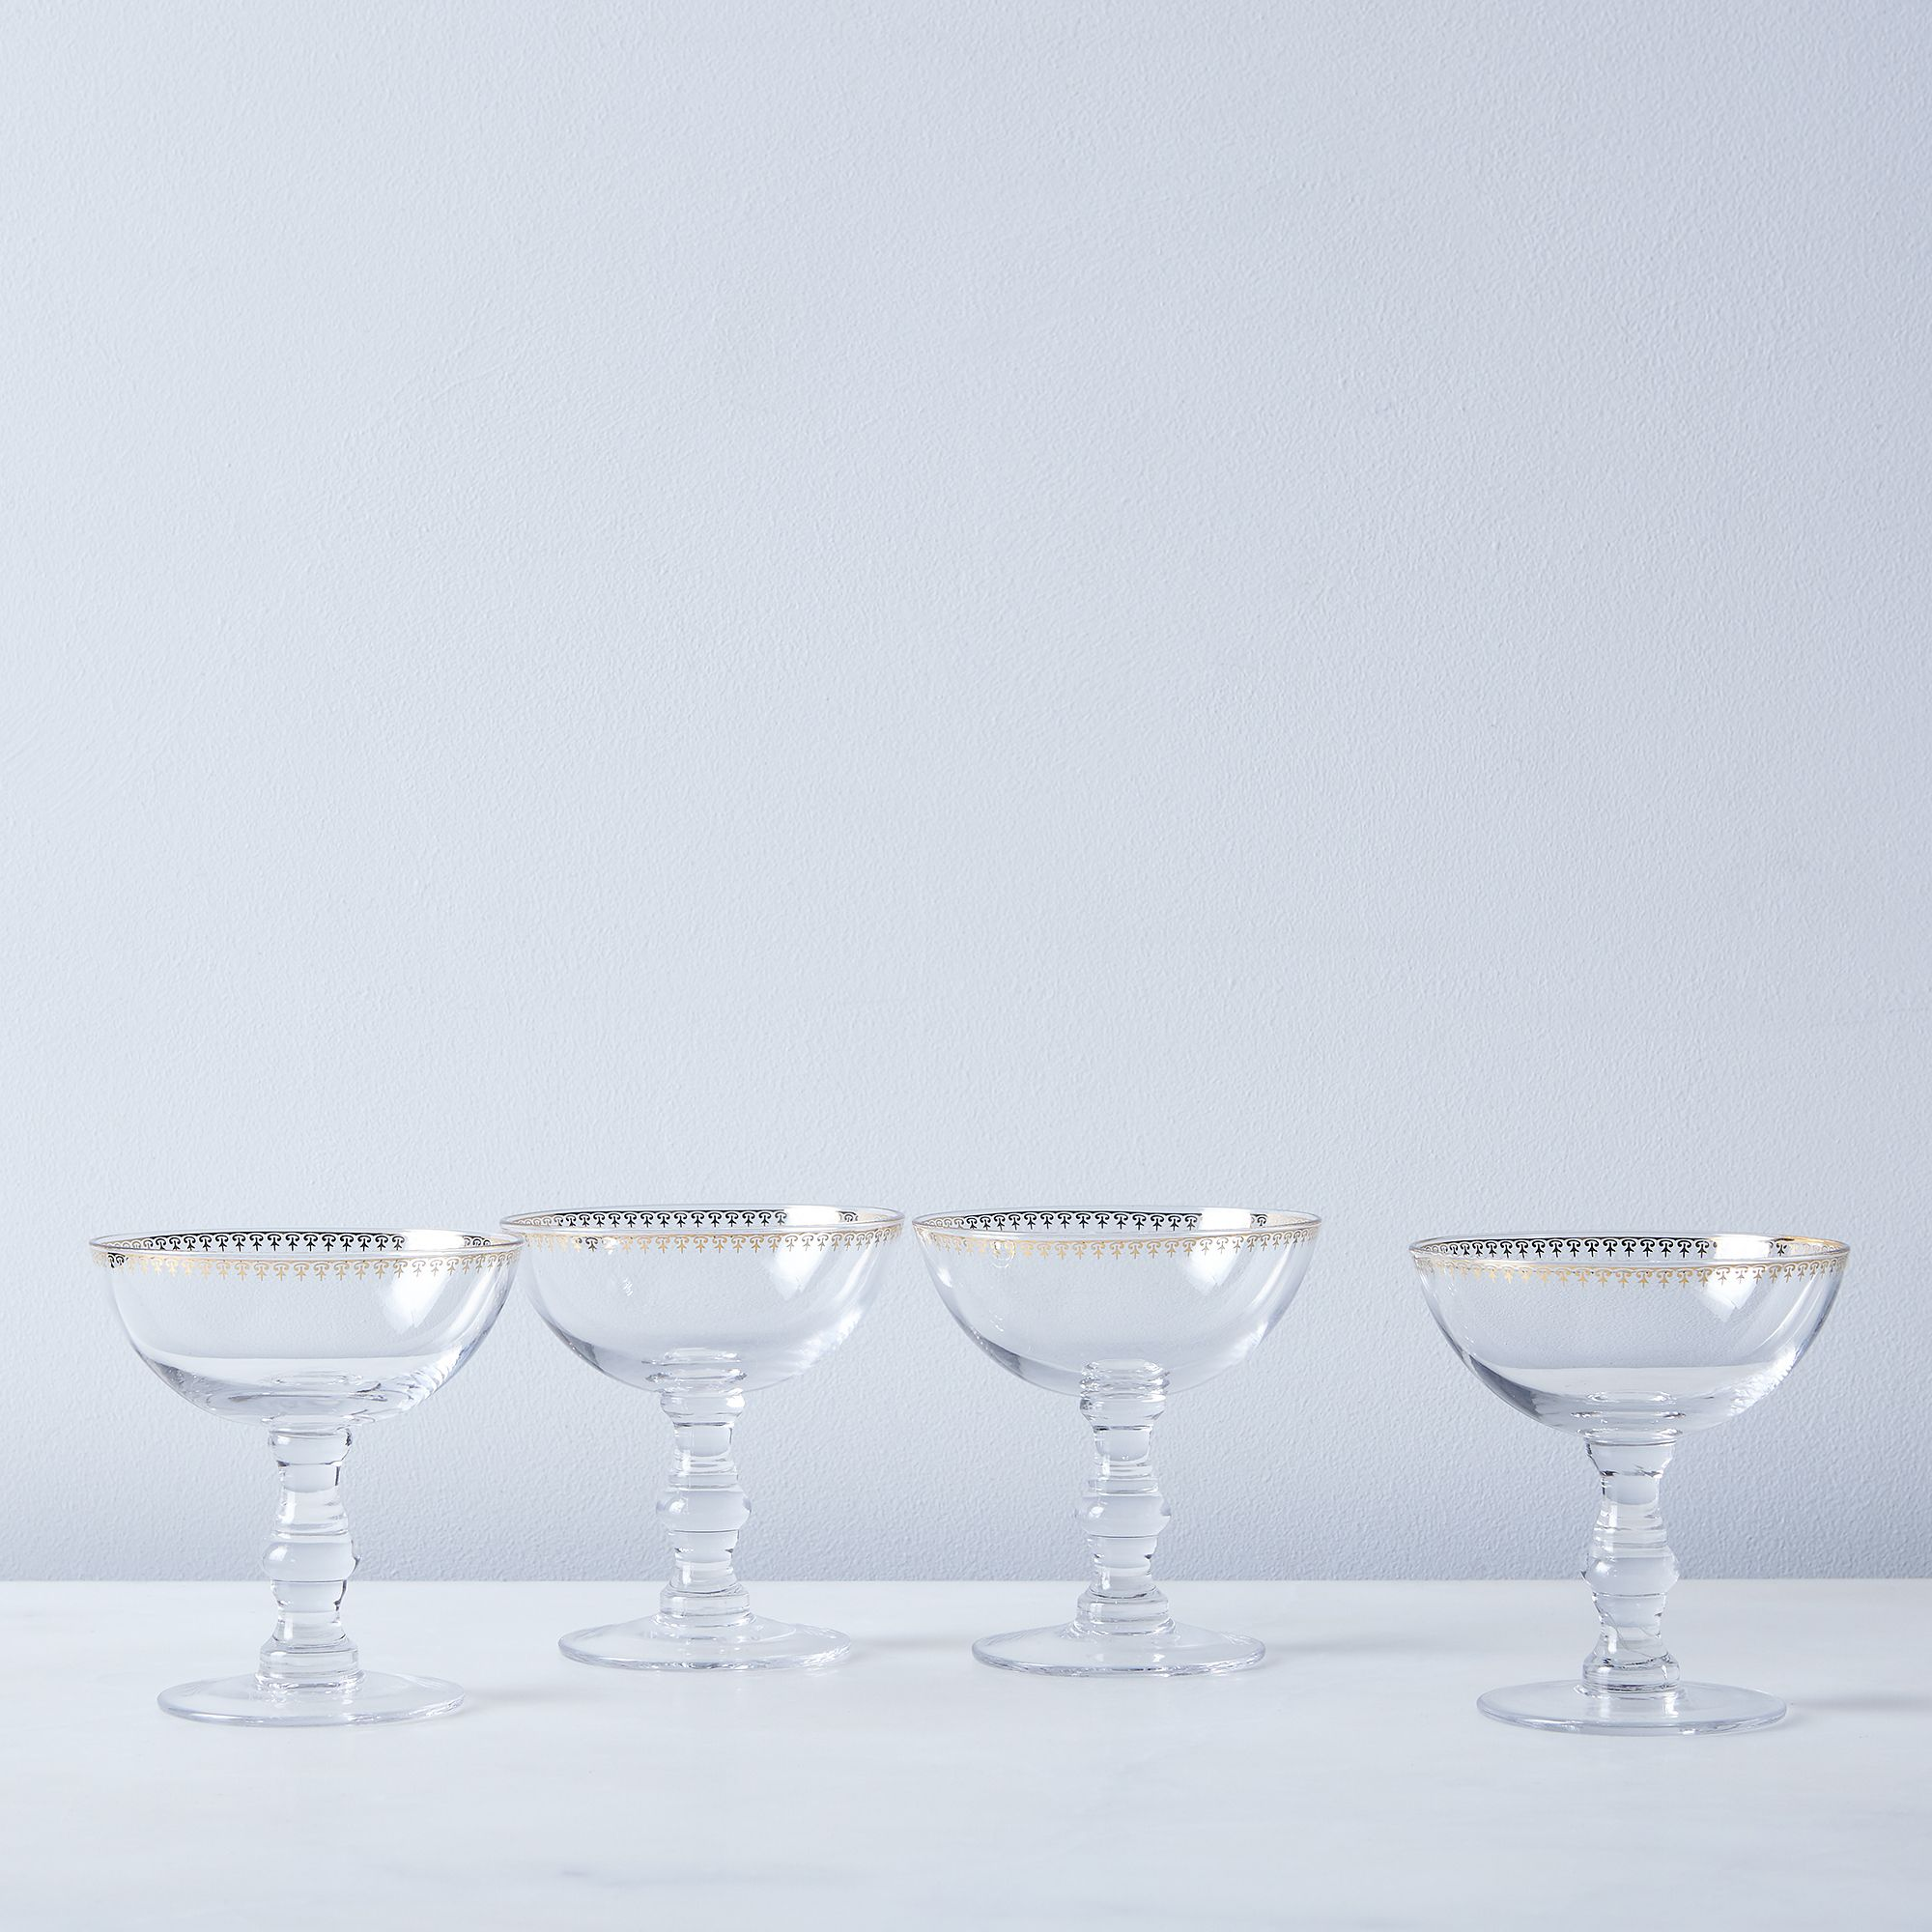 Fc4e8820 26e3 49e7 8397 e83779f6a0ed  2016 1028 kiss that frog patterned gold rimmed champagne coupes set of 4 silo rocky luten 007